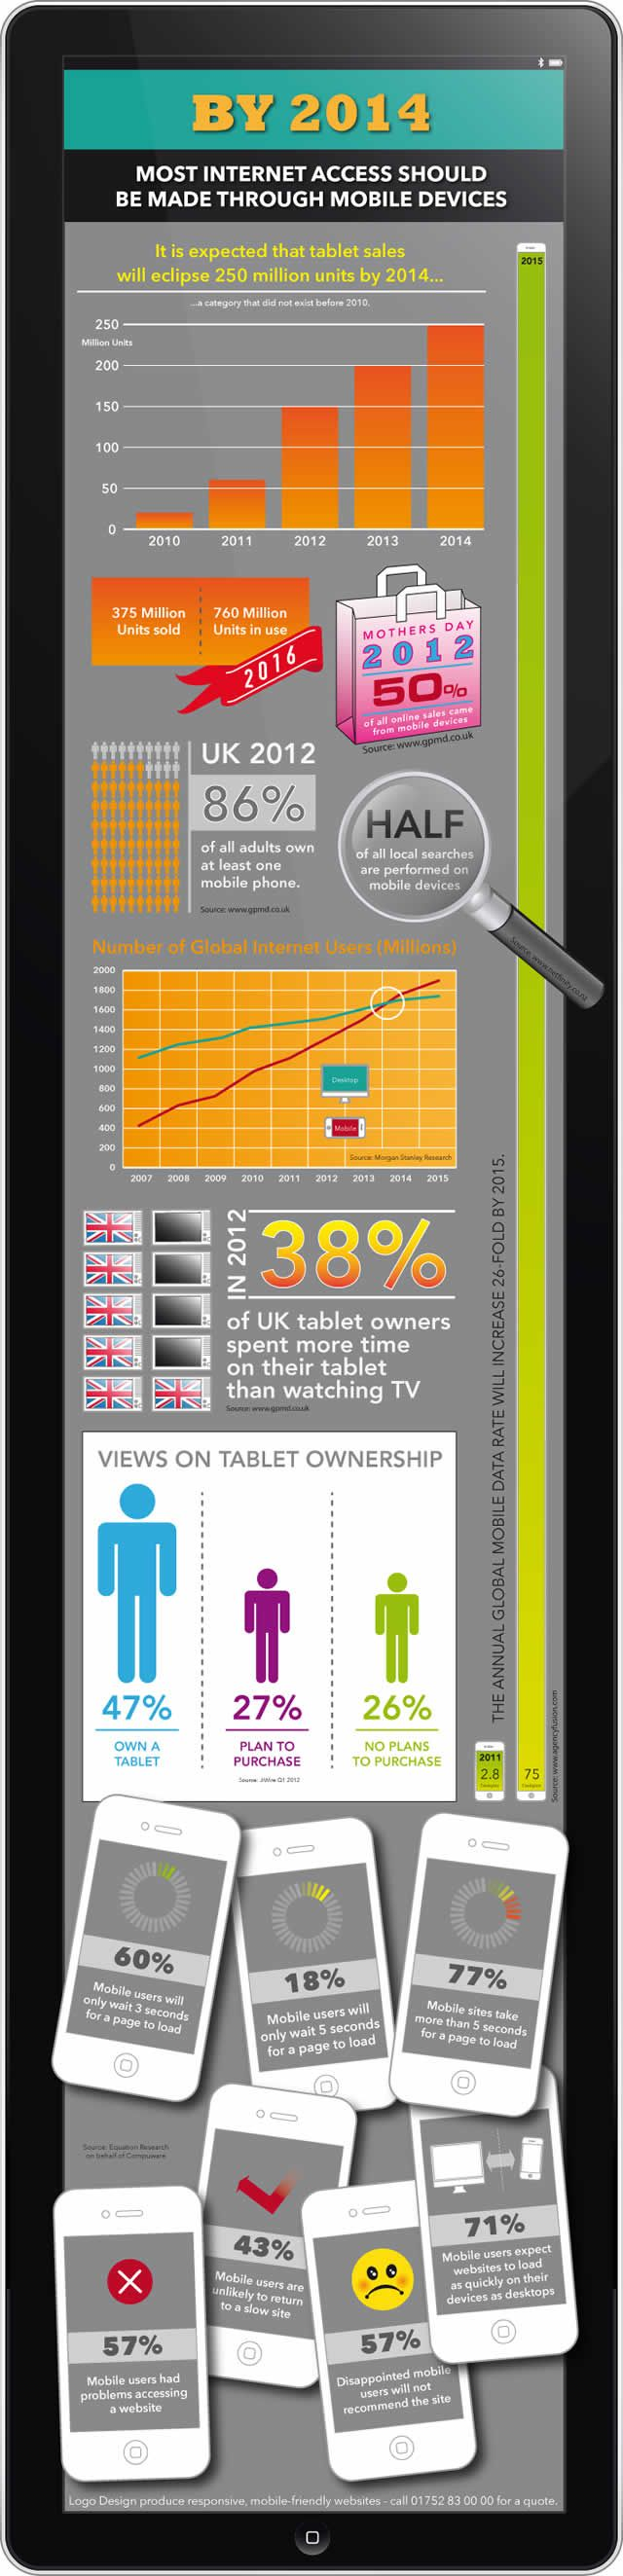 Why your website must be mobile friendly by 2014 Infographic